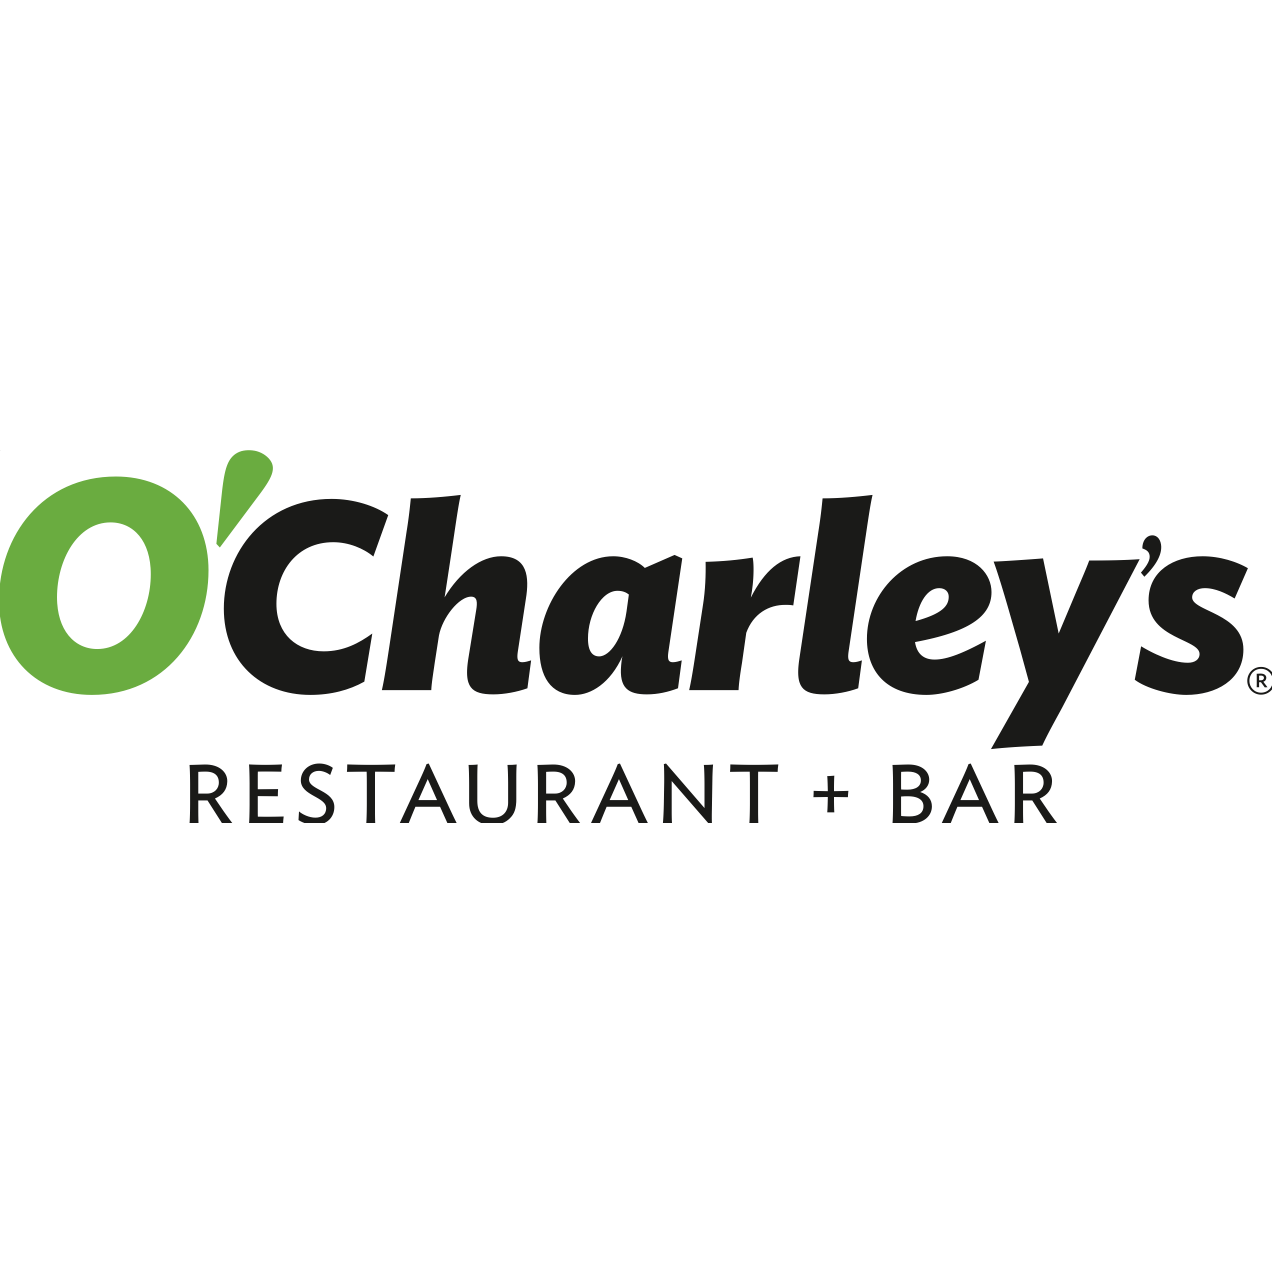 O'Charley's Restaurant & Bar - Cincinnati, OH - Restaurants